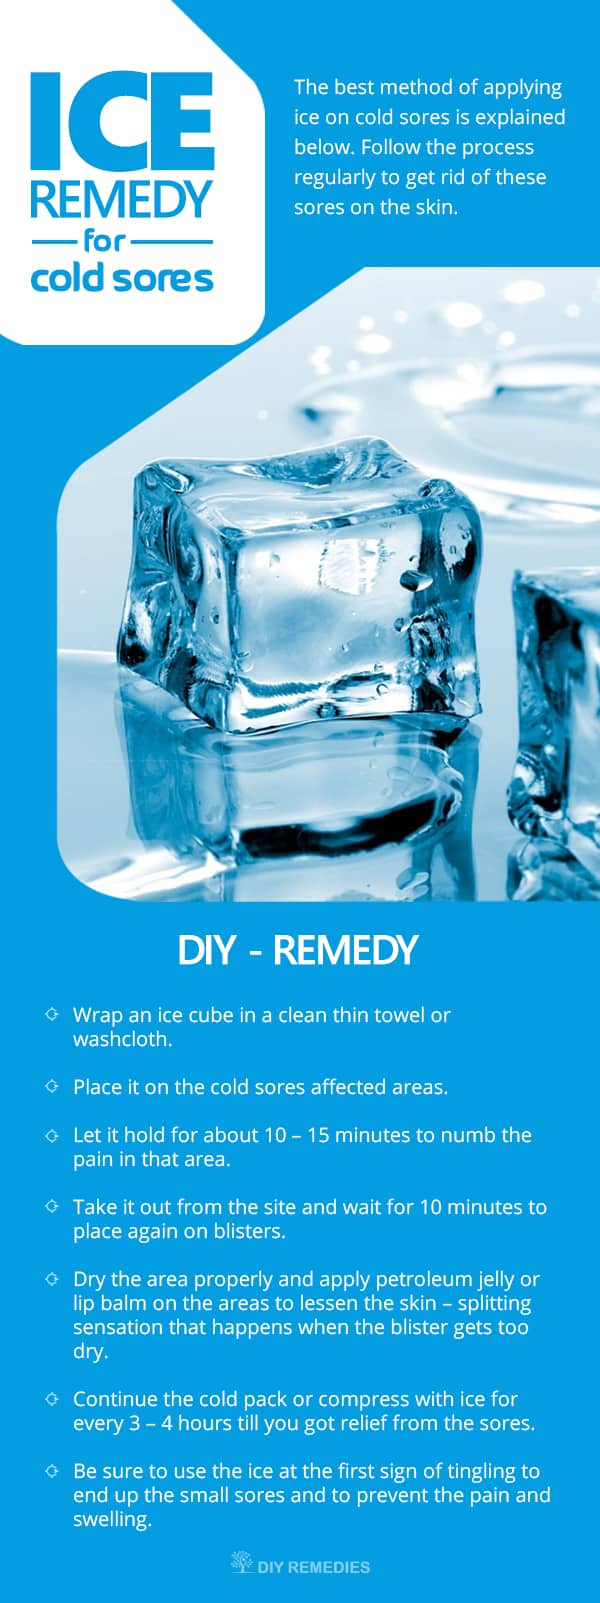 DIY-Ice-Remedy-for-Cold-Sores